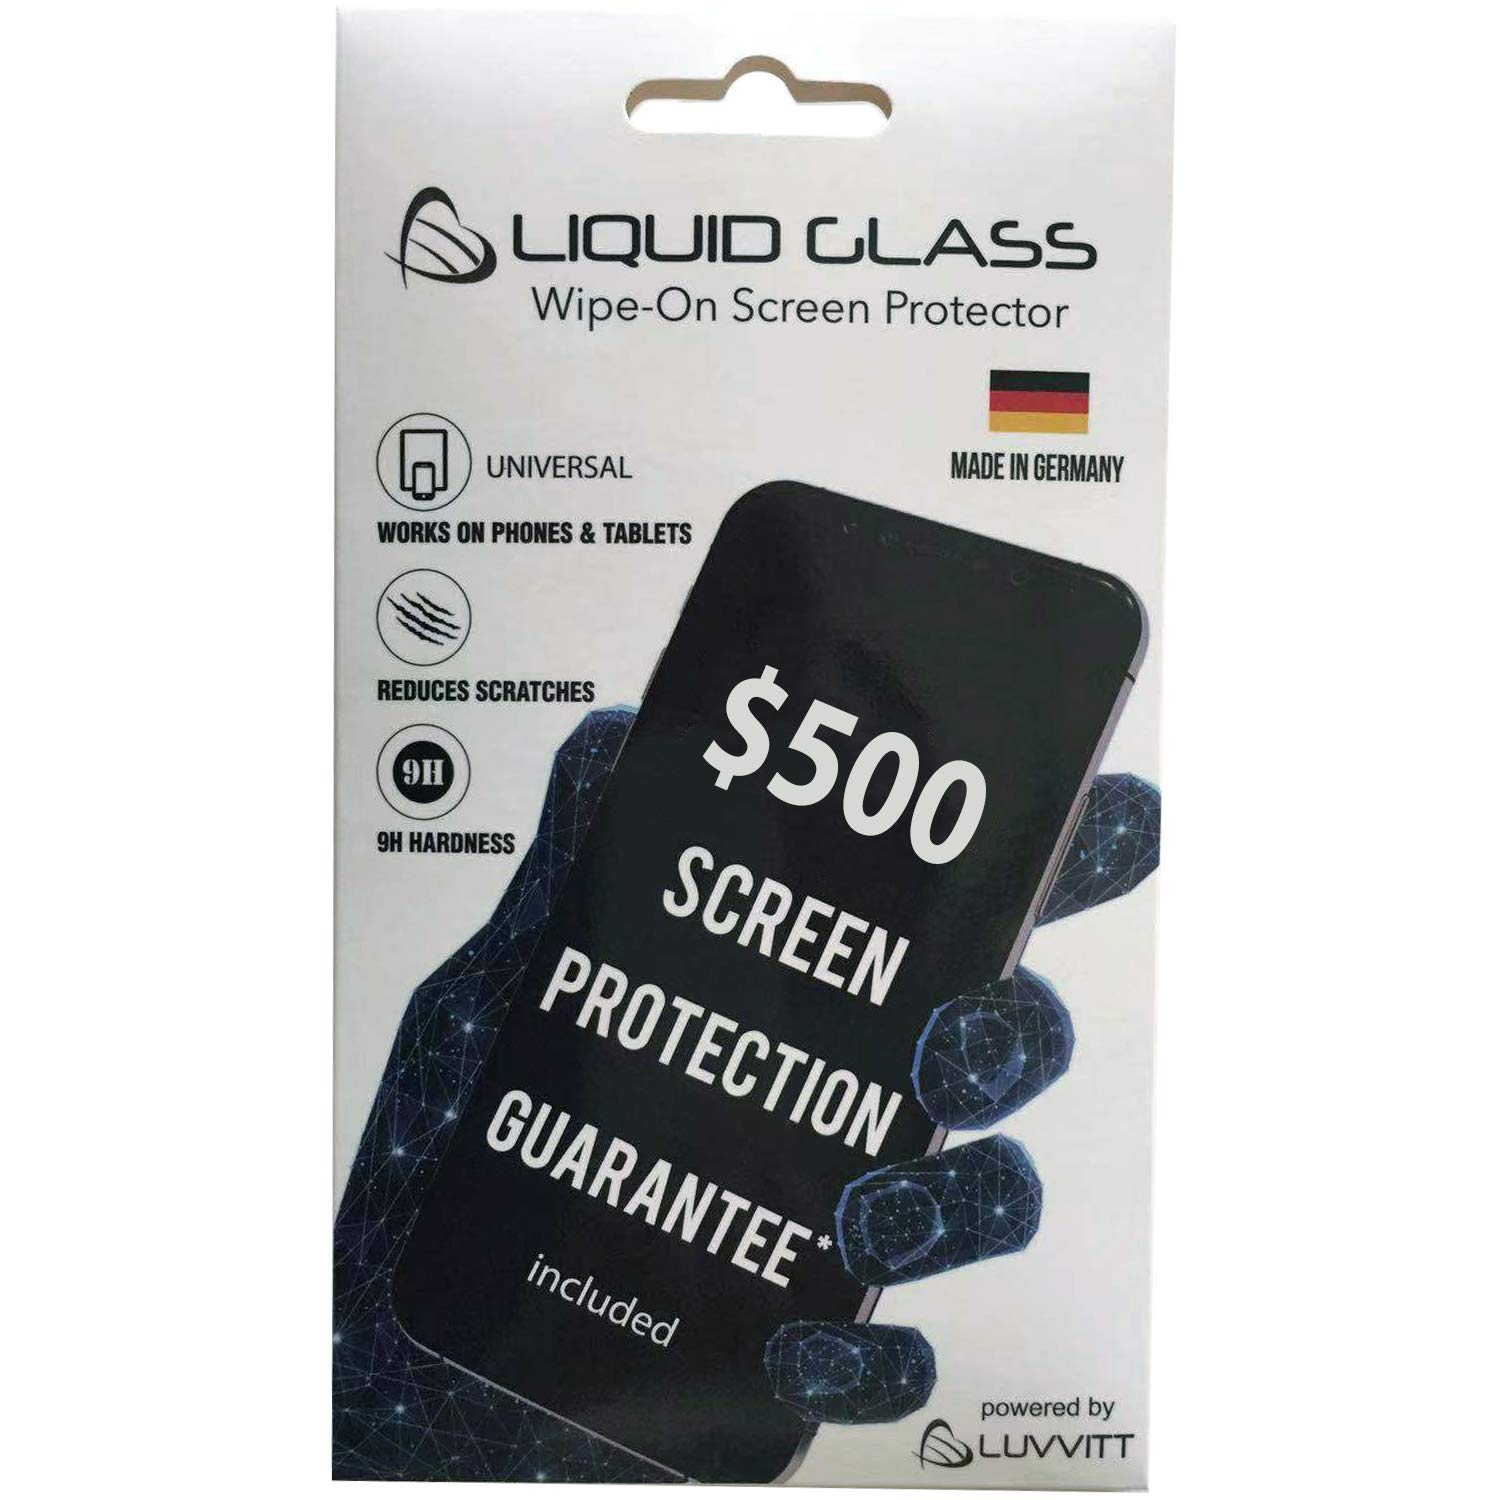 Liquid Glass Screen Protector with $500 Warranty - Scratch Resistant Wipe On Nano Coating Protection for All Apple Samsung and Other Phones Tablets Smart Watch iPhone iPad Galaxy and More